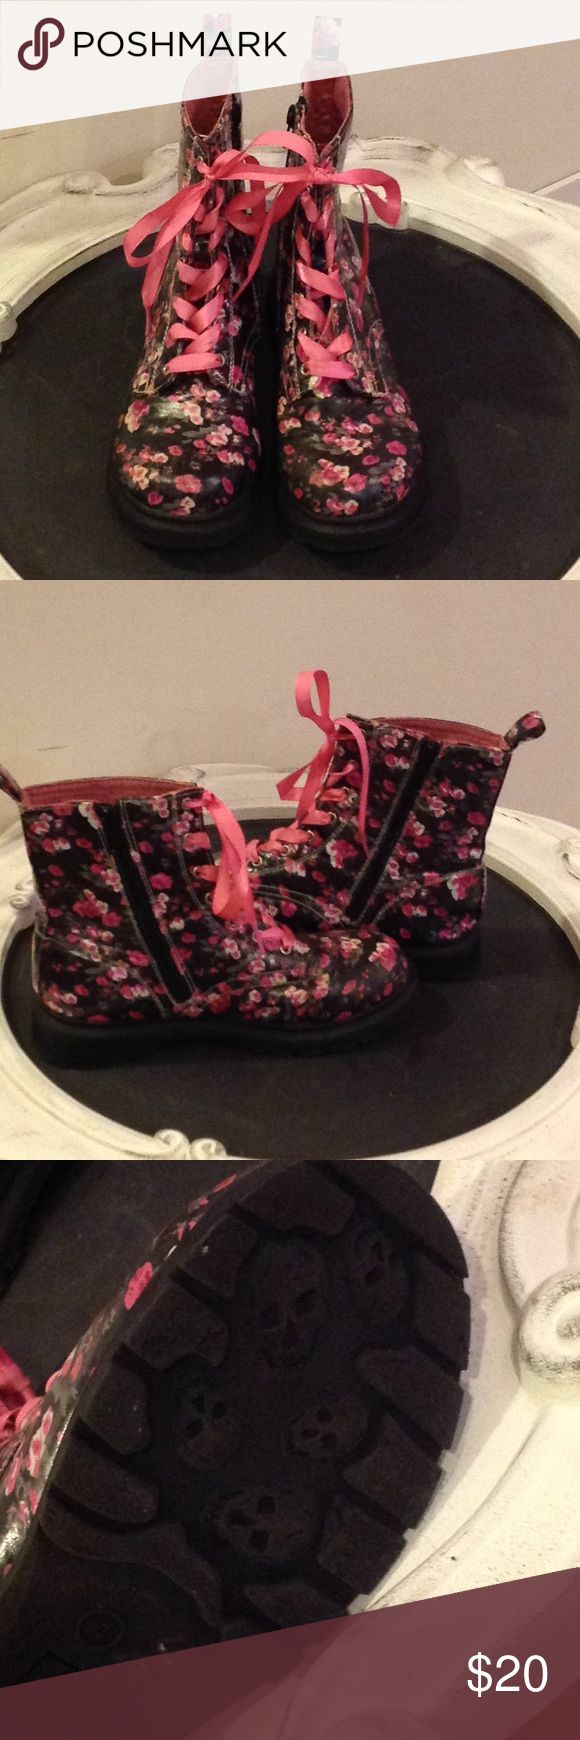 TOTAL GIRL FLORAL COMBAT BOOTS. 🌸🌺💀 GORGEOUS TOTAL GIRL FLORAL COMBAT BOOT. SIDE ZIP AND LACE FRONT. BLACK WITH PINK AND WHITE FLOWERS AND GREEN LEAVES. SKULL HEAD SOLES.🌺🌸💀 IN GREAT WORN CONDITION😉 Total Girl Shoes Boots